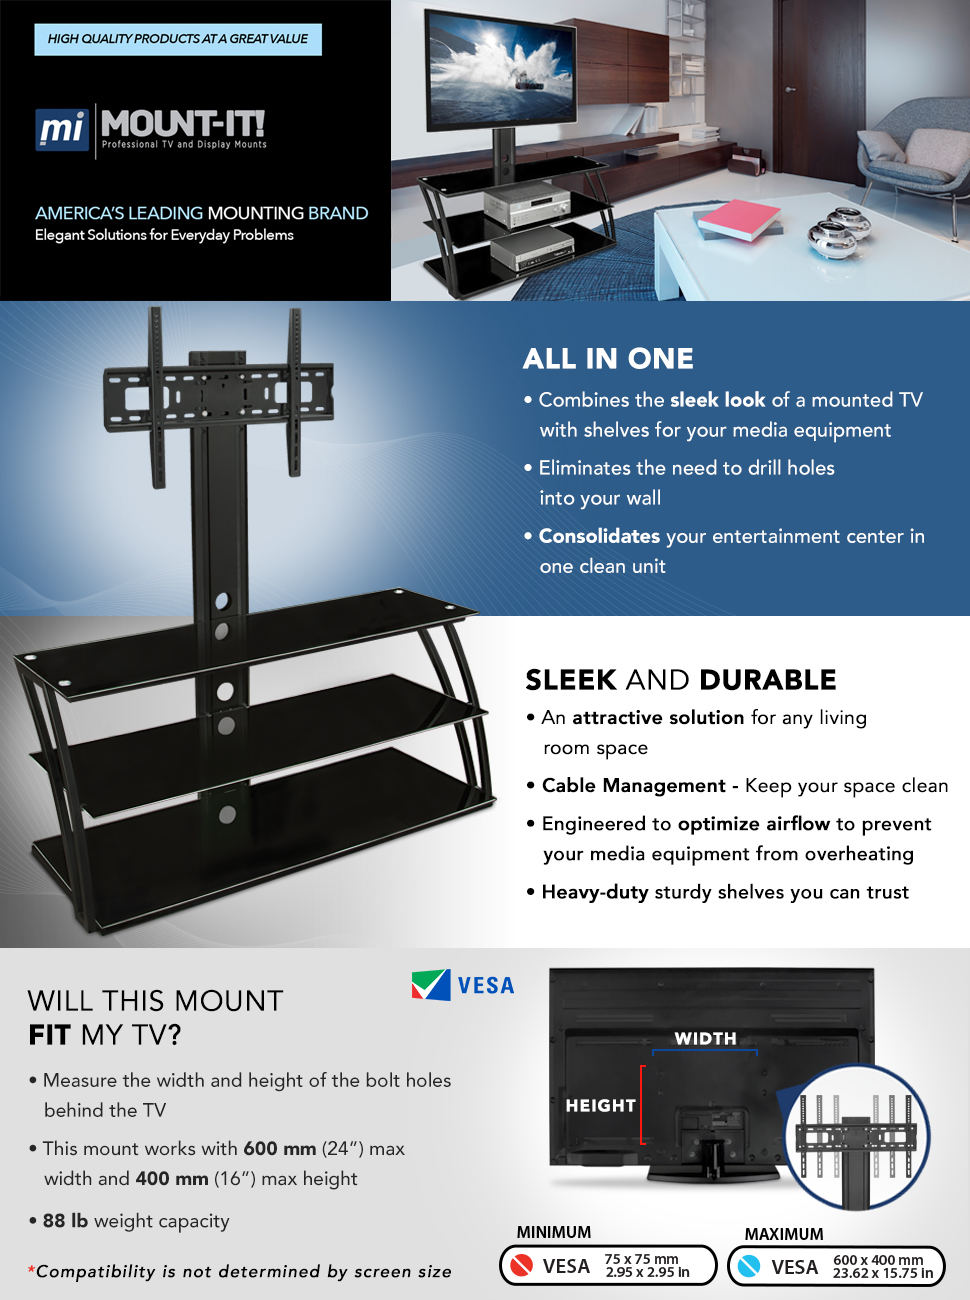 Amazon.com: Mount-It! TV Stand with Mount and Storage Shelves ...